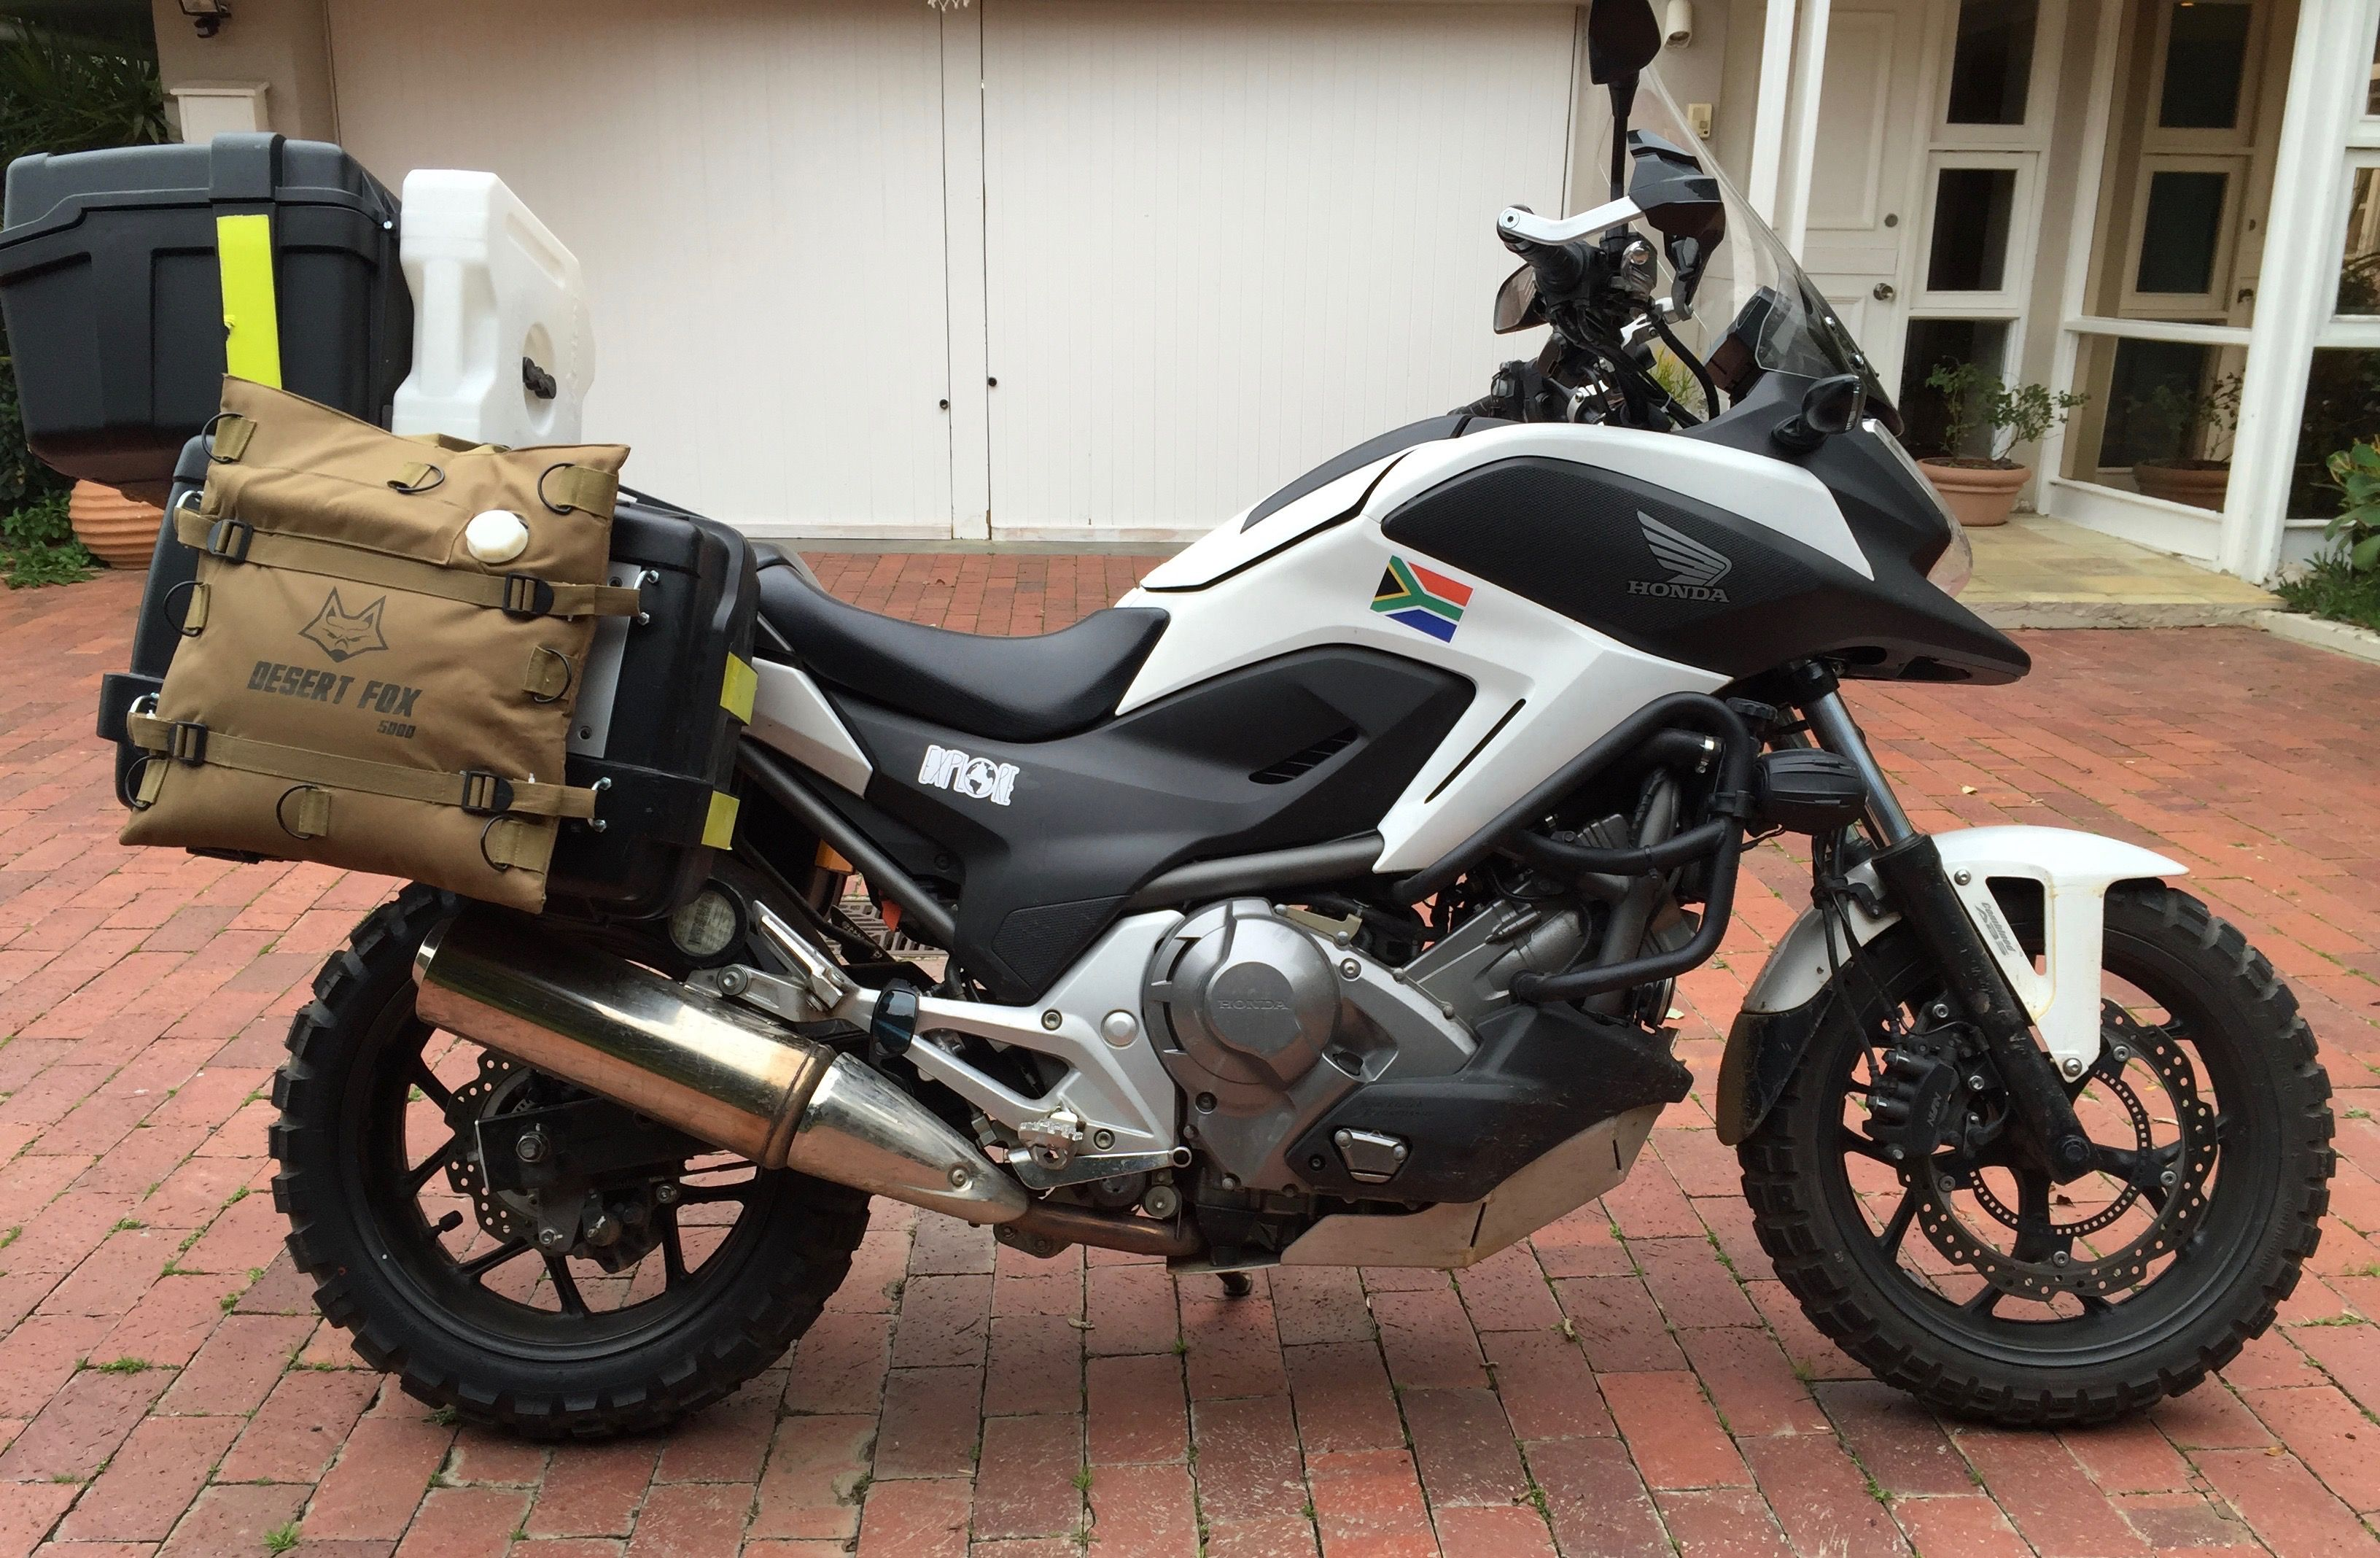 Honda Nc700x Dct Adventure Ready Cape Town To Kenya 2 With Images